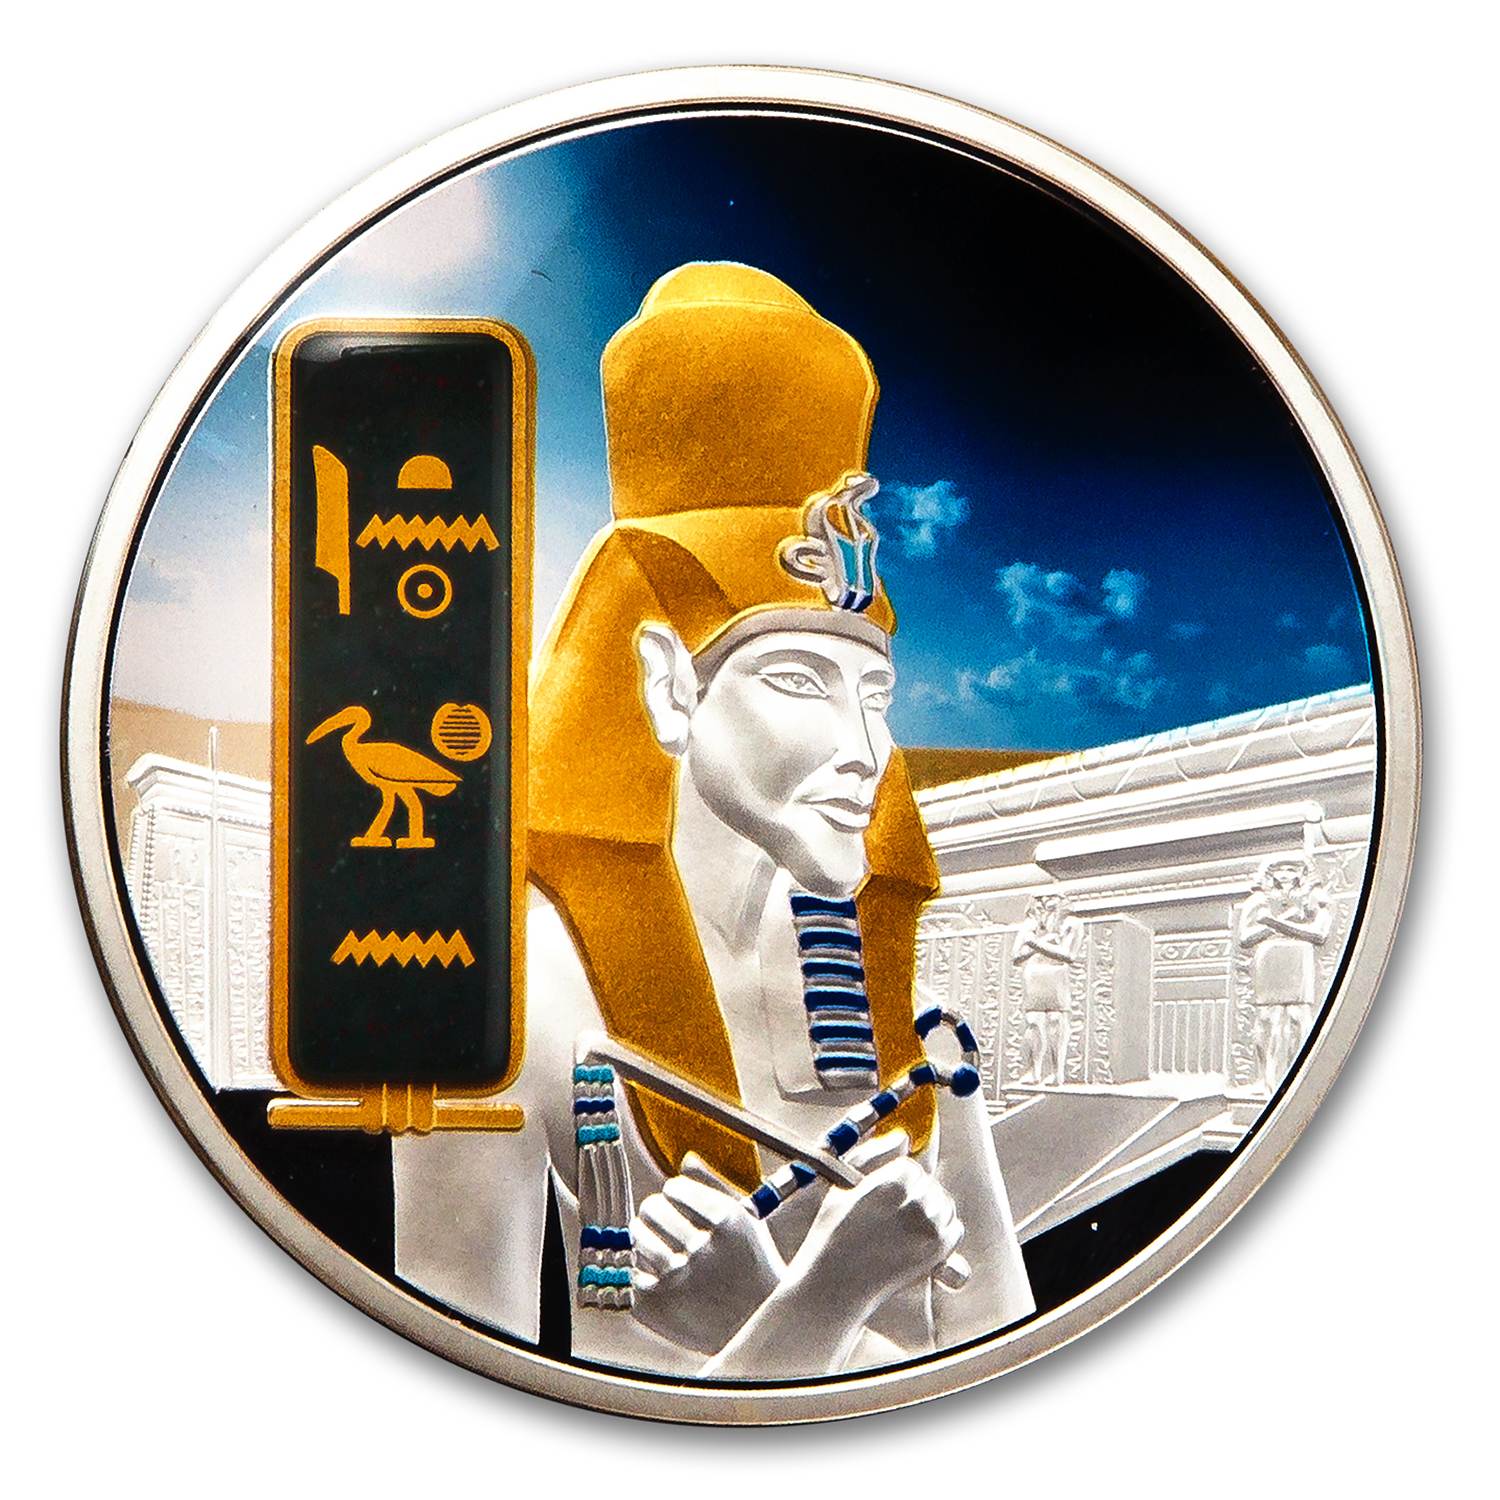 Fiji 2013 2 oz Proof Silver $50 Egyptian Jewels - Akhenaten